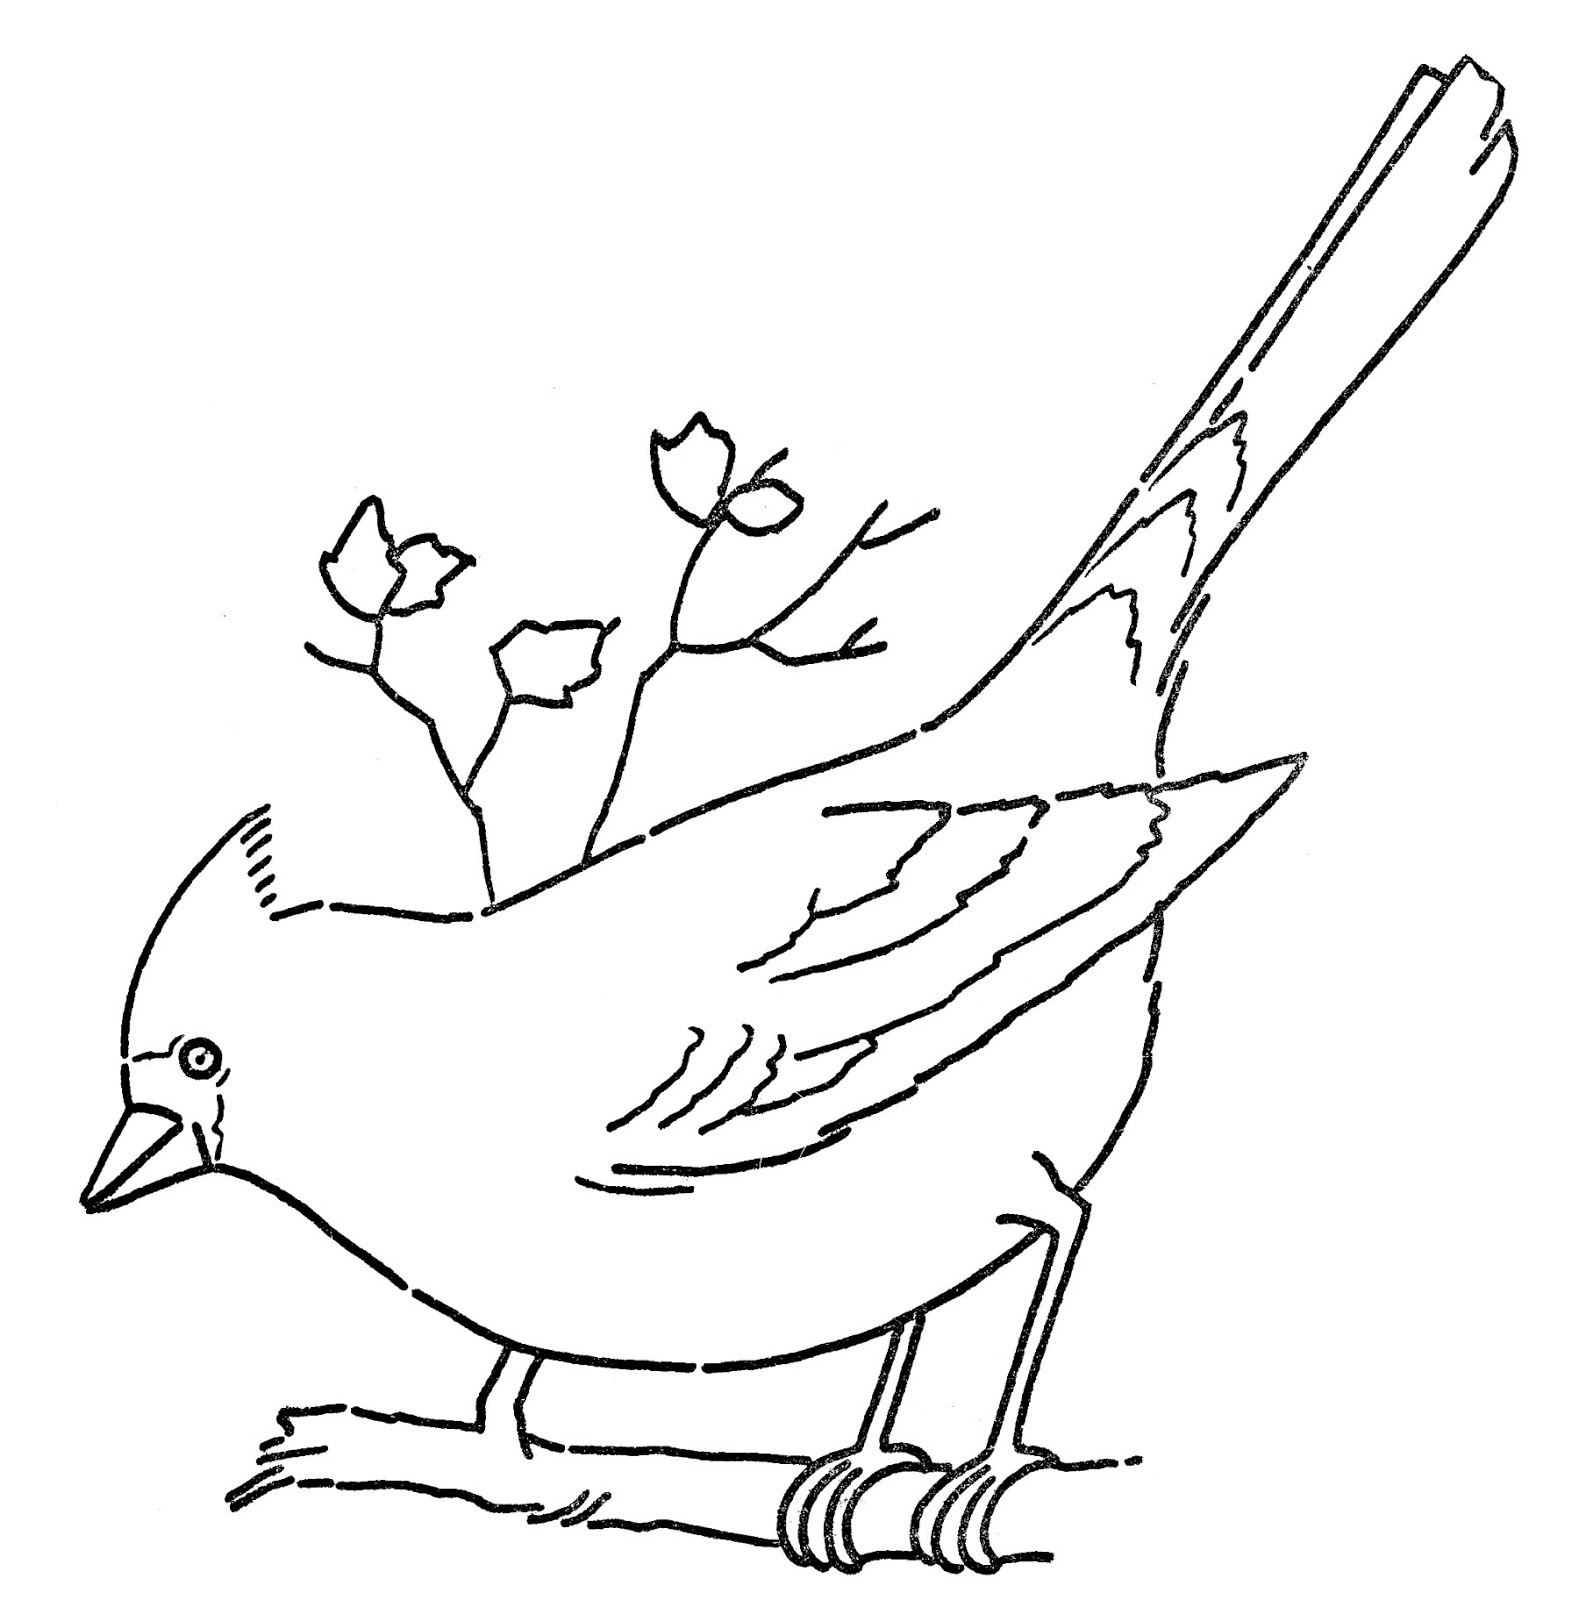 A sketch of a cardinal clipart in color.